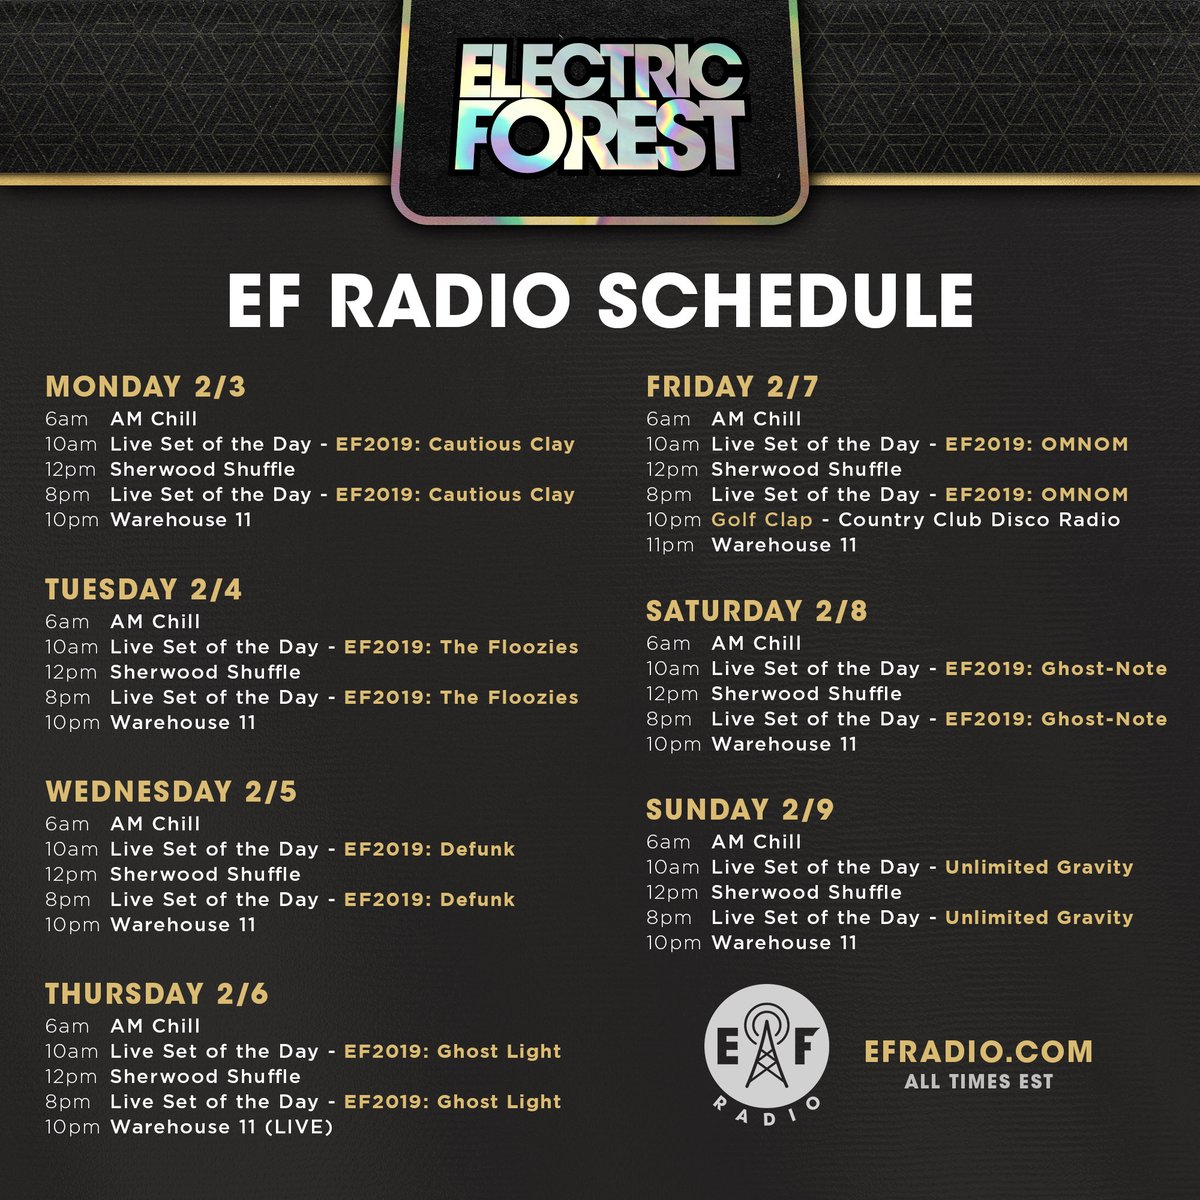 This week on @EForestRadio!   Tune in and hear #EF2019 Sets from @imOMNOM, @CautiousClayton, @TheFlooziesDuo, @GhostLightBand, @GNote_Official and others, plus daily broadcasts of the Sherwood Shuffle and more...   Hear it 24/7/365 at http://EFRadio.com !pic.twitter.com/vuBFfbrRDa